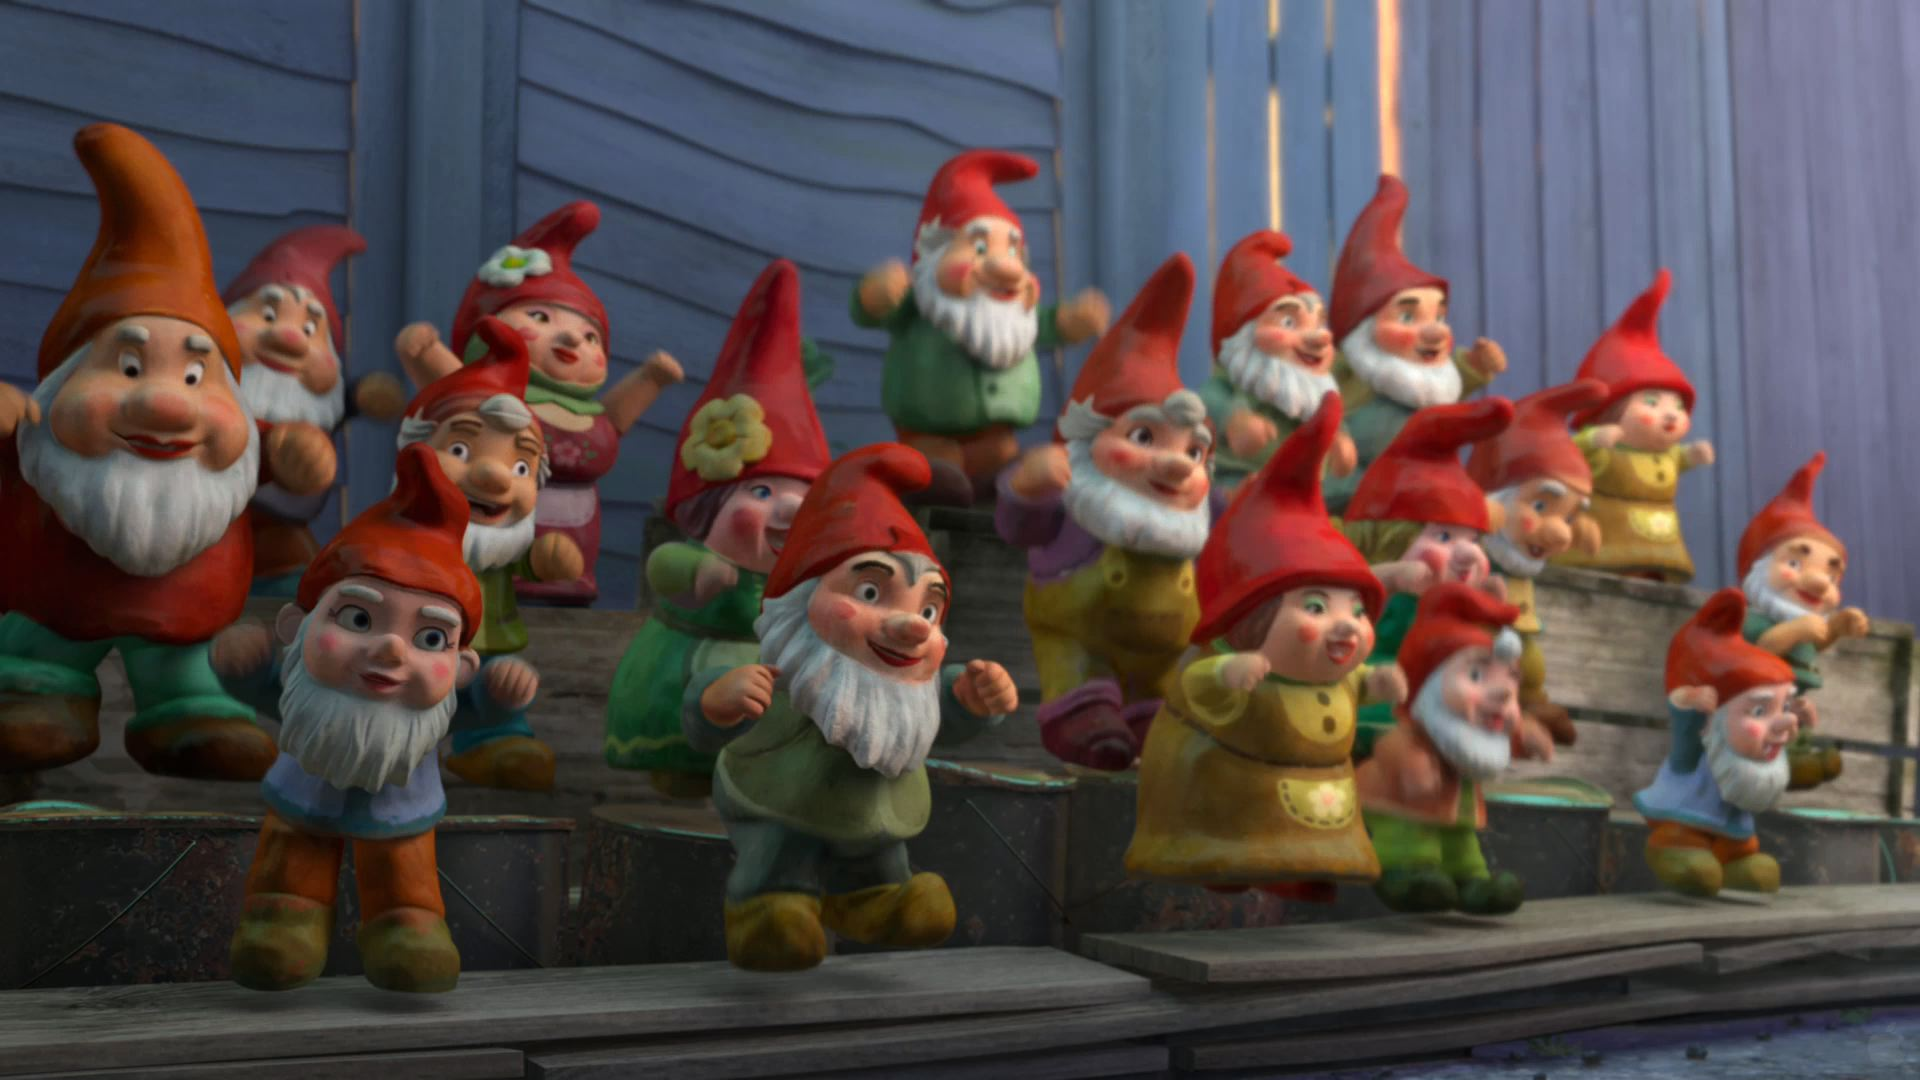 The Reds (Gnomeo & Juliet)